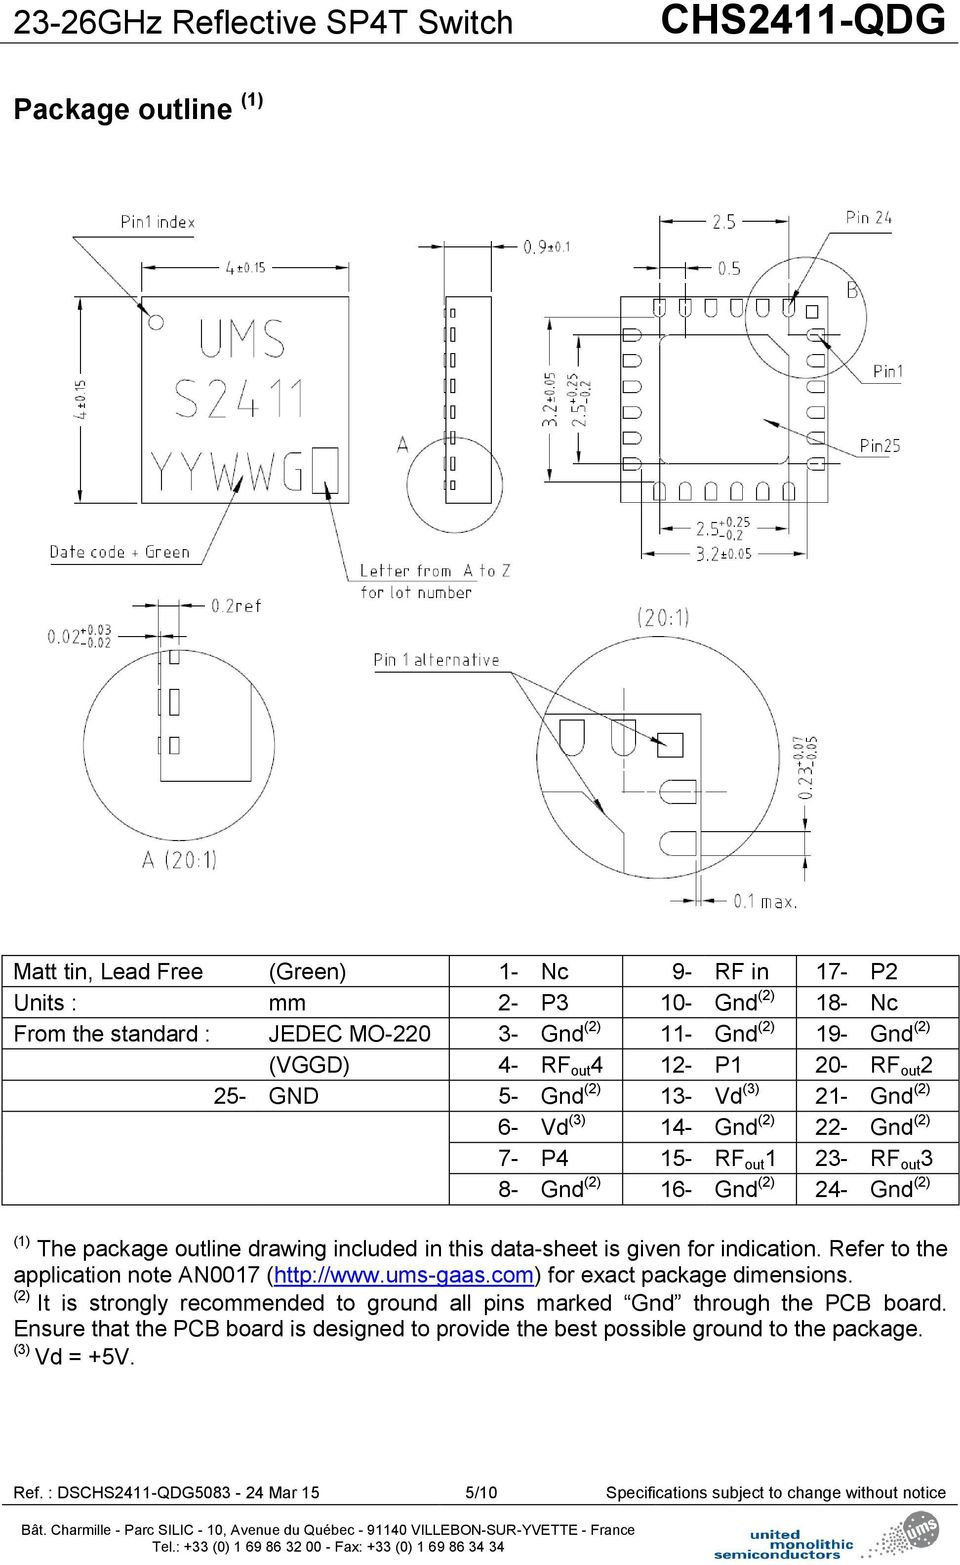 drawing included in this data-sheet is given for indication. Refer to the application note AN0017 (http://www.ums-gaas.com) for exact package dimensions.